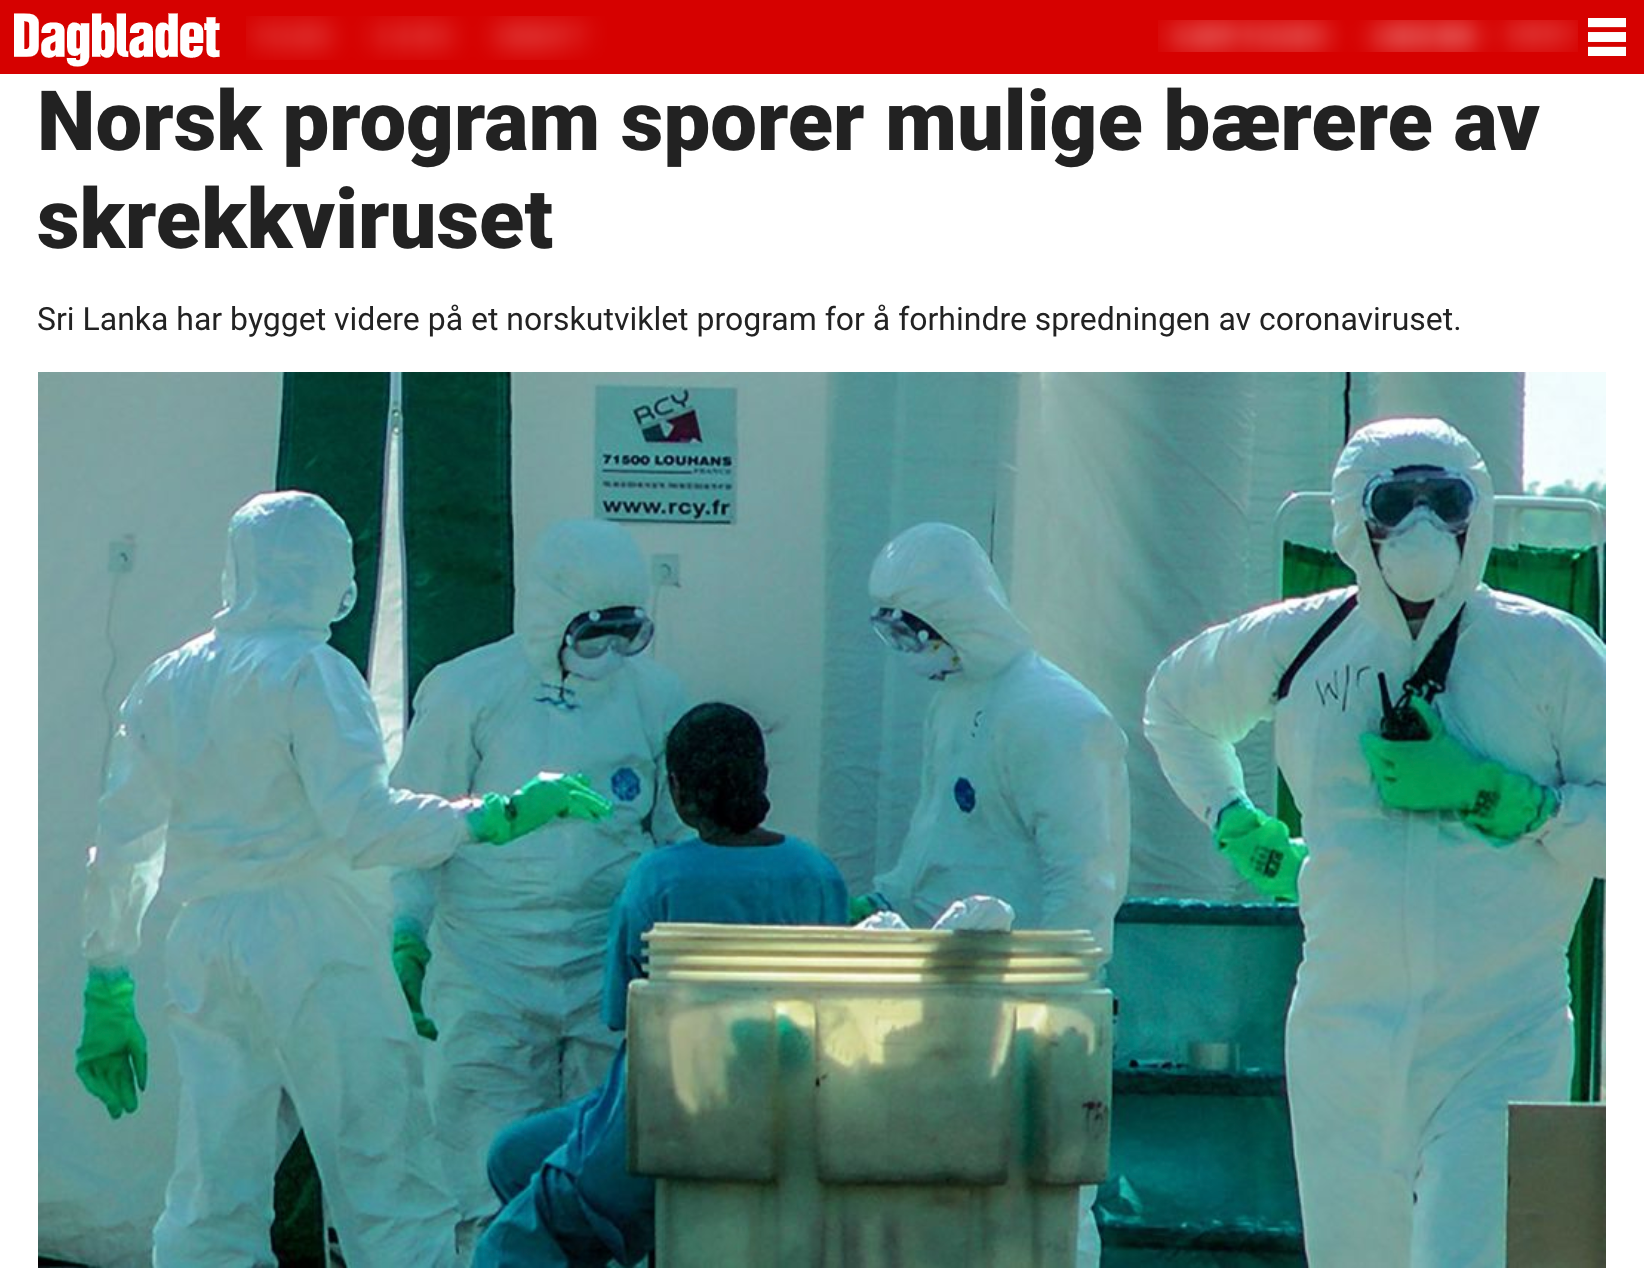 Dagbladet DHIS2 COVID-19 article